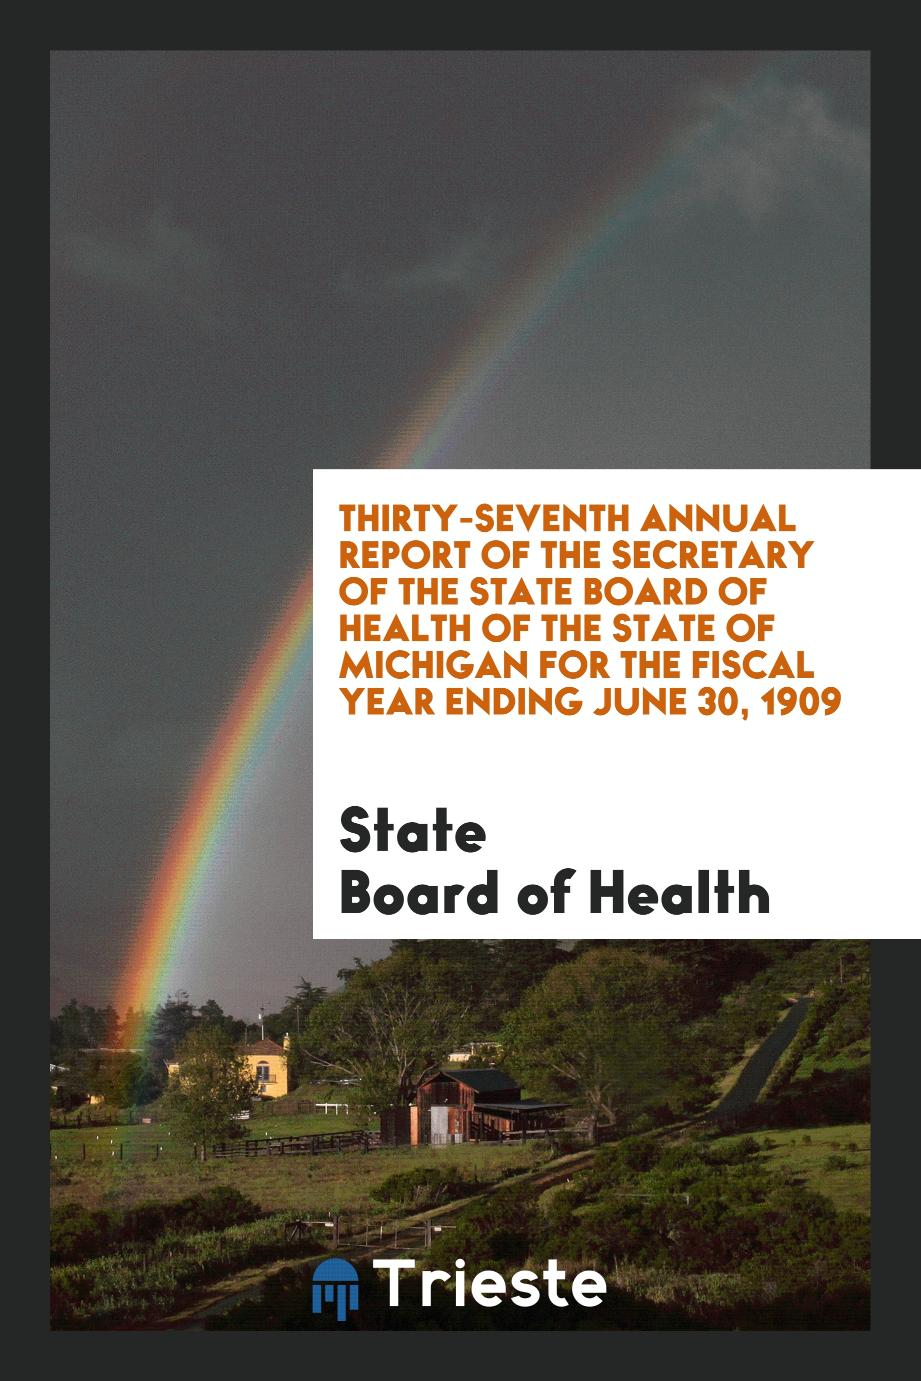 Thirty-Seventh Annual Report of the Secretary of the State Board of Health of the State of Michigan for the Fiscal Year Ending June 30, 1909